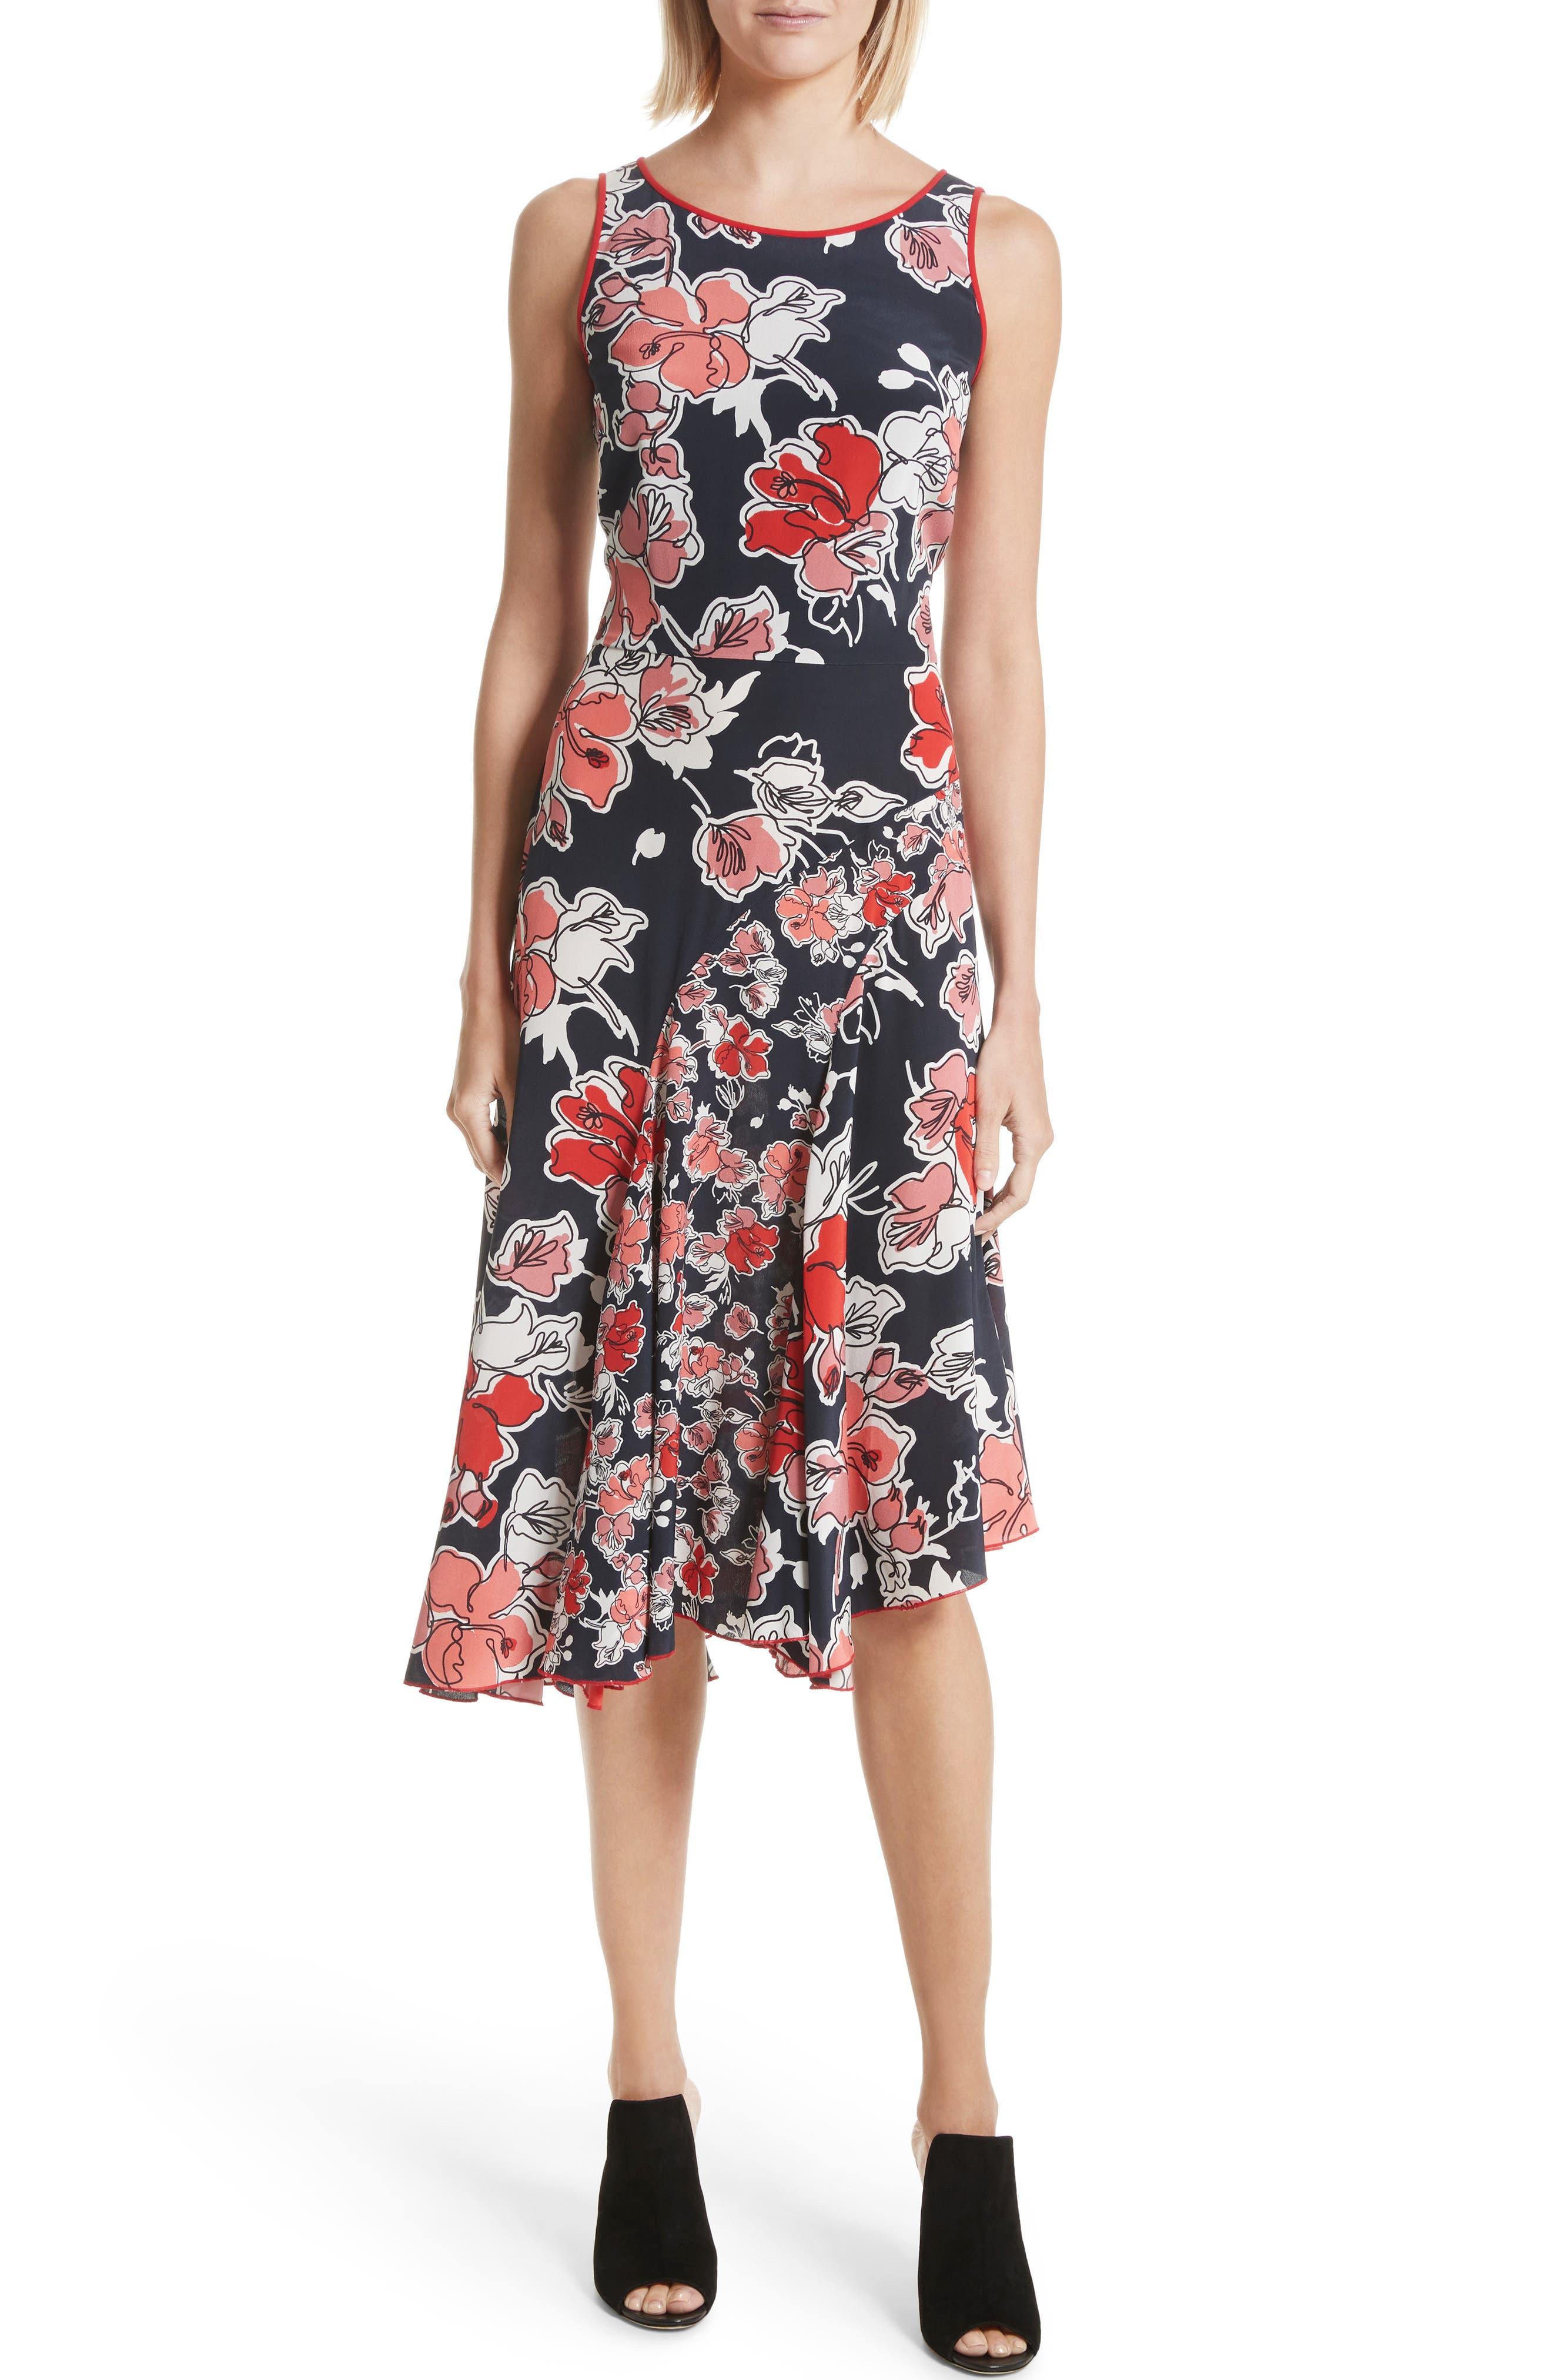 GREY Jason Wu Floral Print Silk Asymmetrical Dress